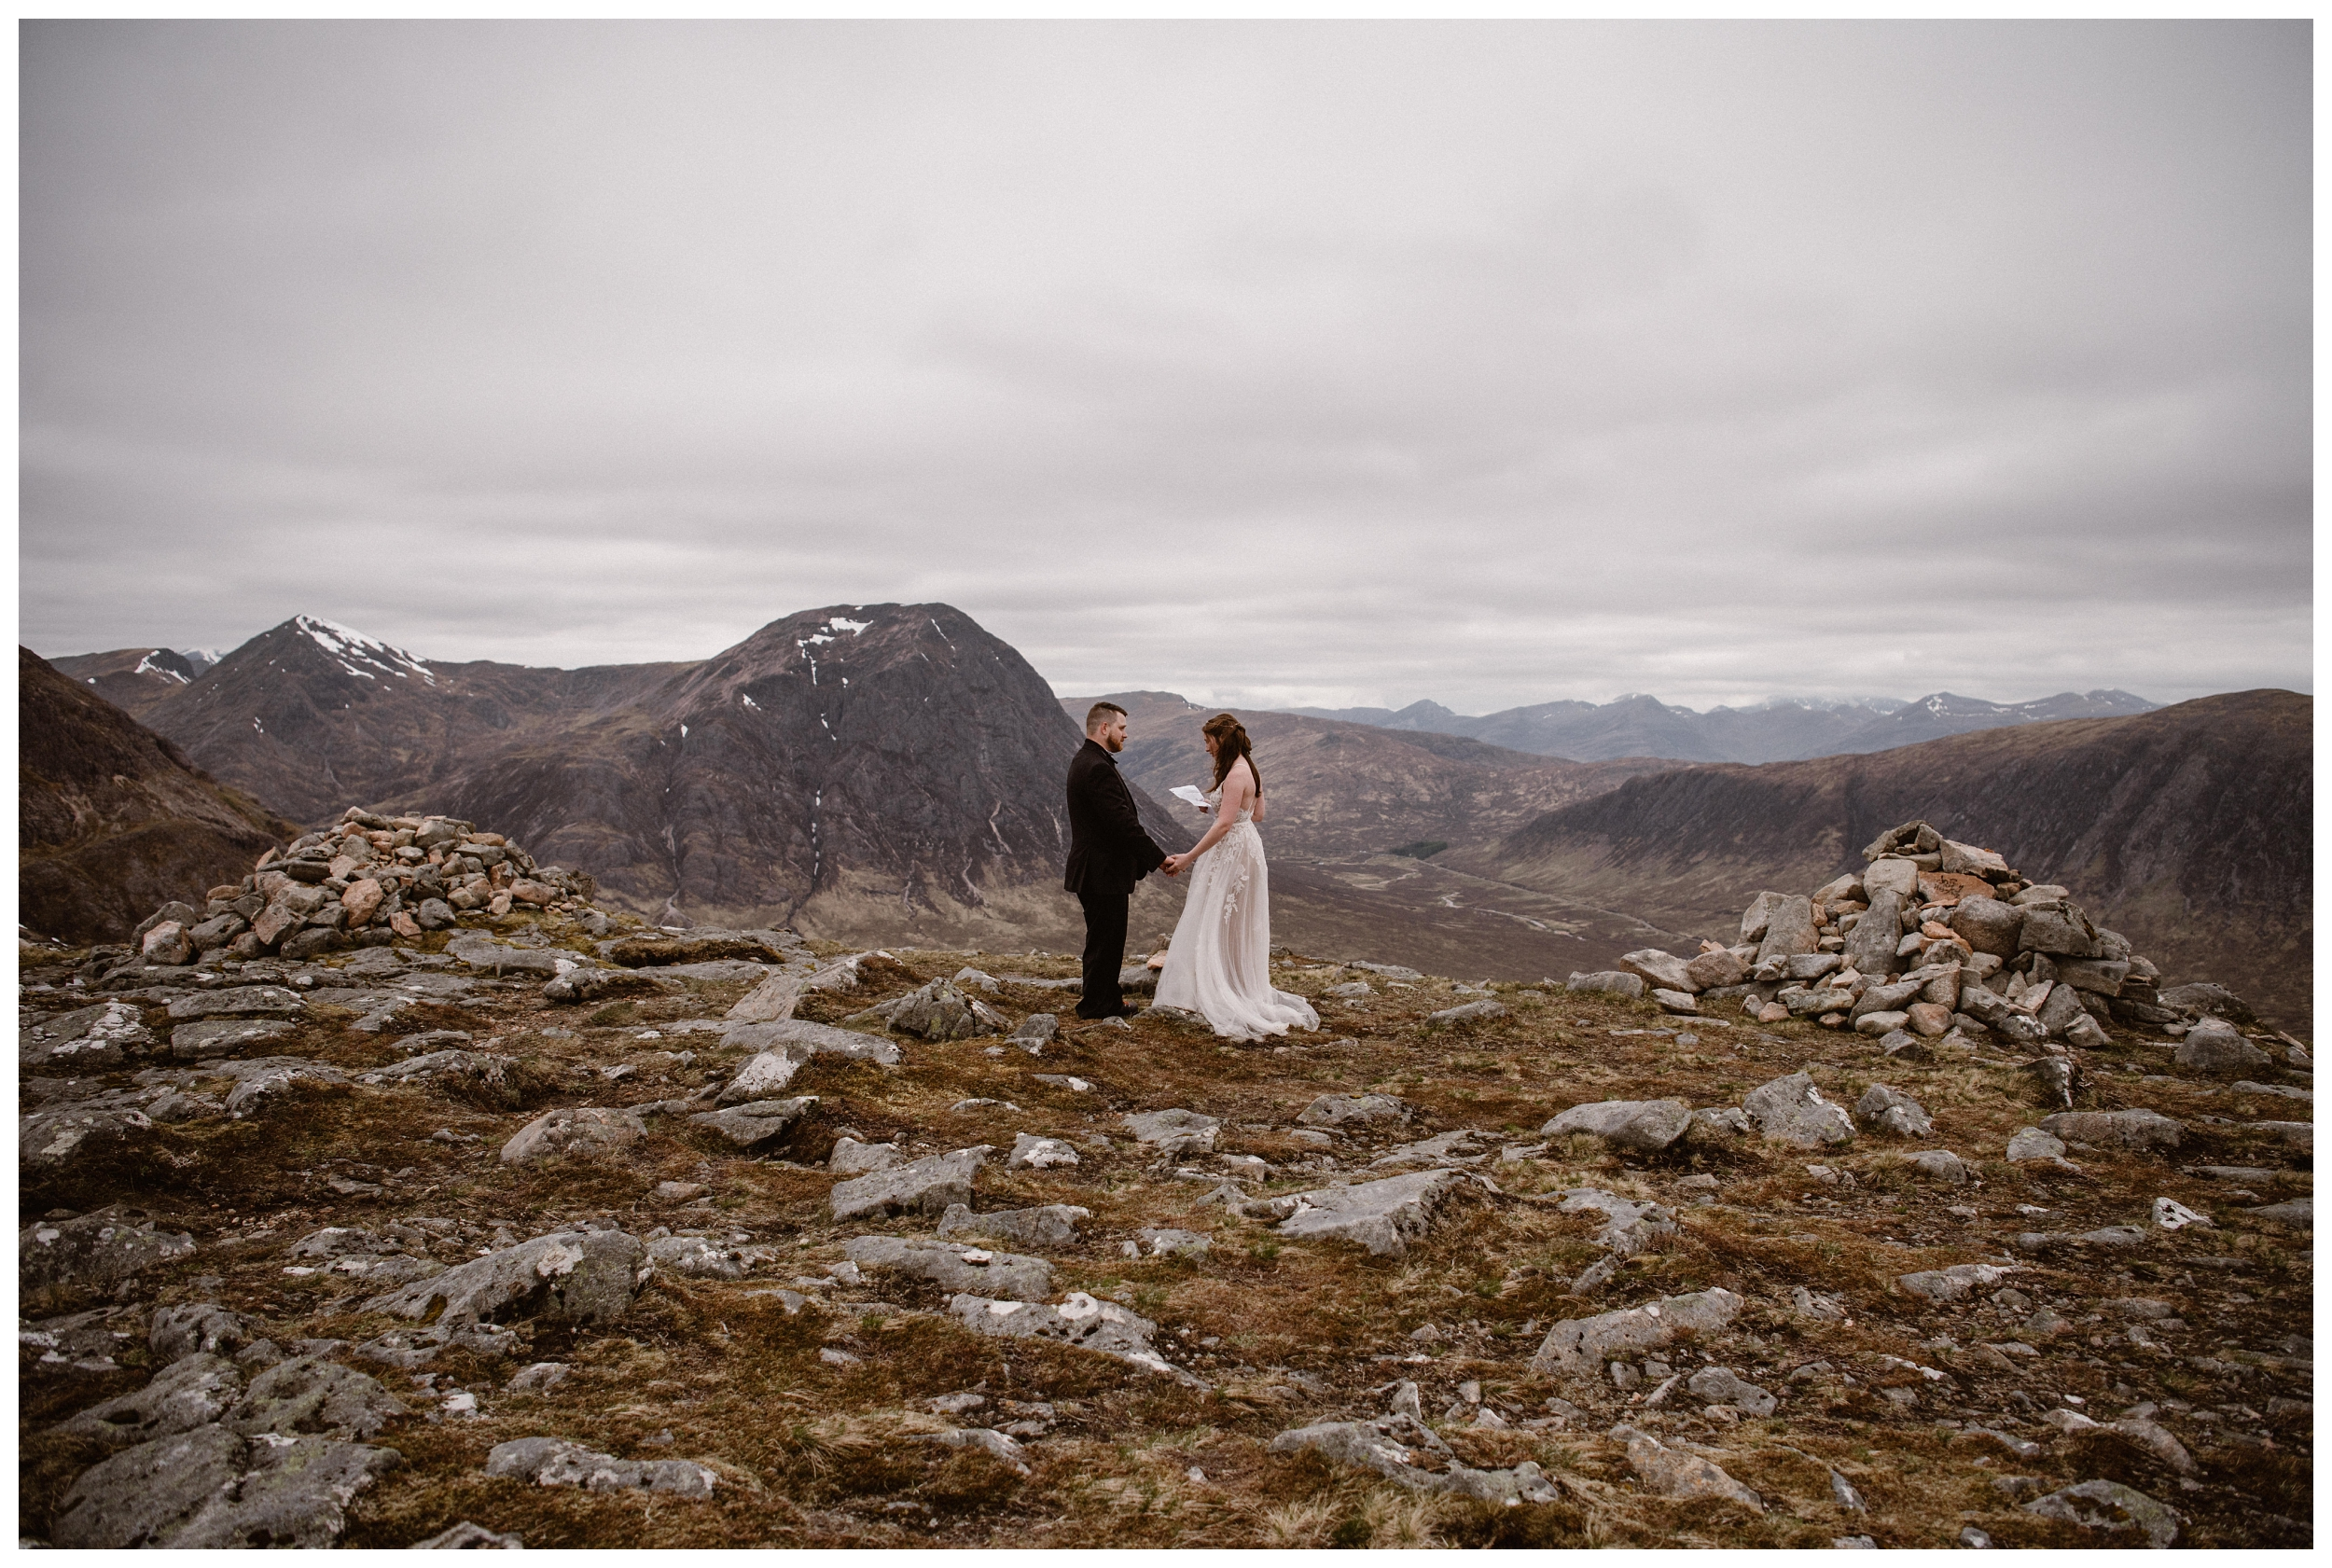 Surrounded by hills, marshes, bogs, and lochs, Elissa and Daniel say their vows high in the hills of the Scottish Highlands for their destination wedding elopement. Photo by Maddie Mae, Adventure Instead.